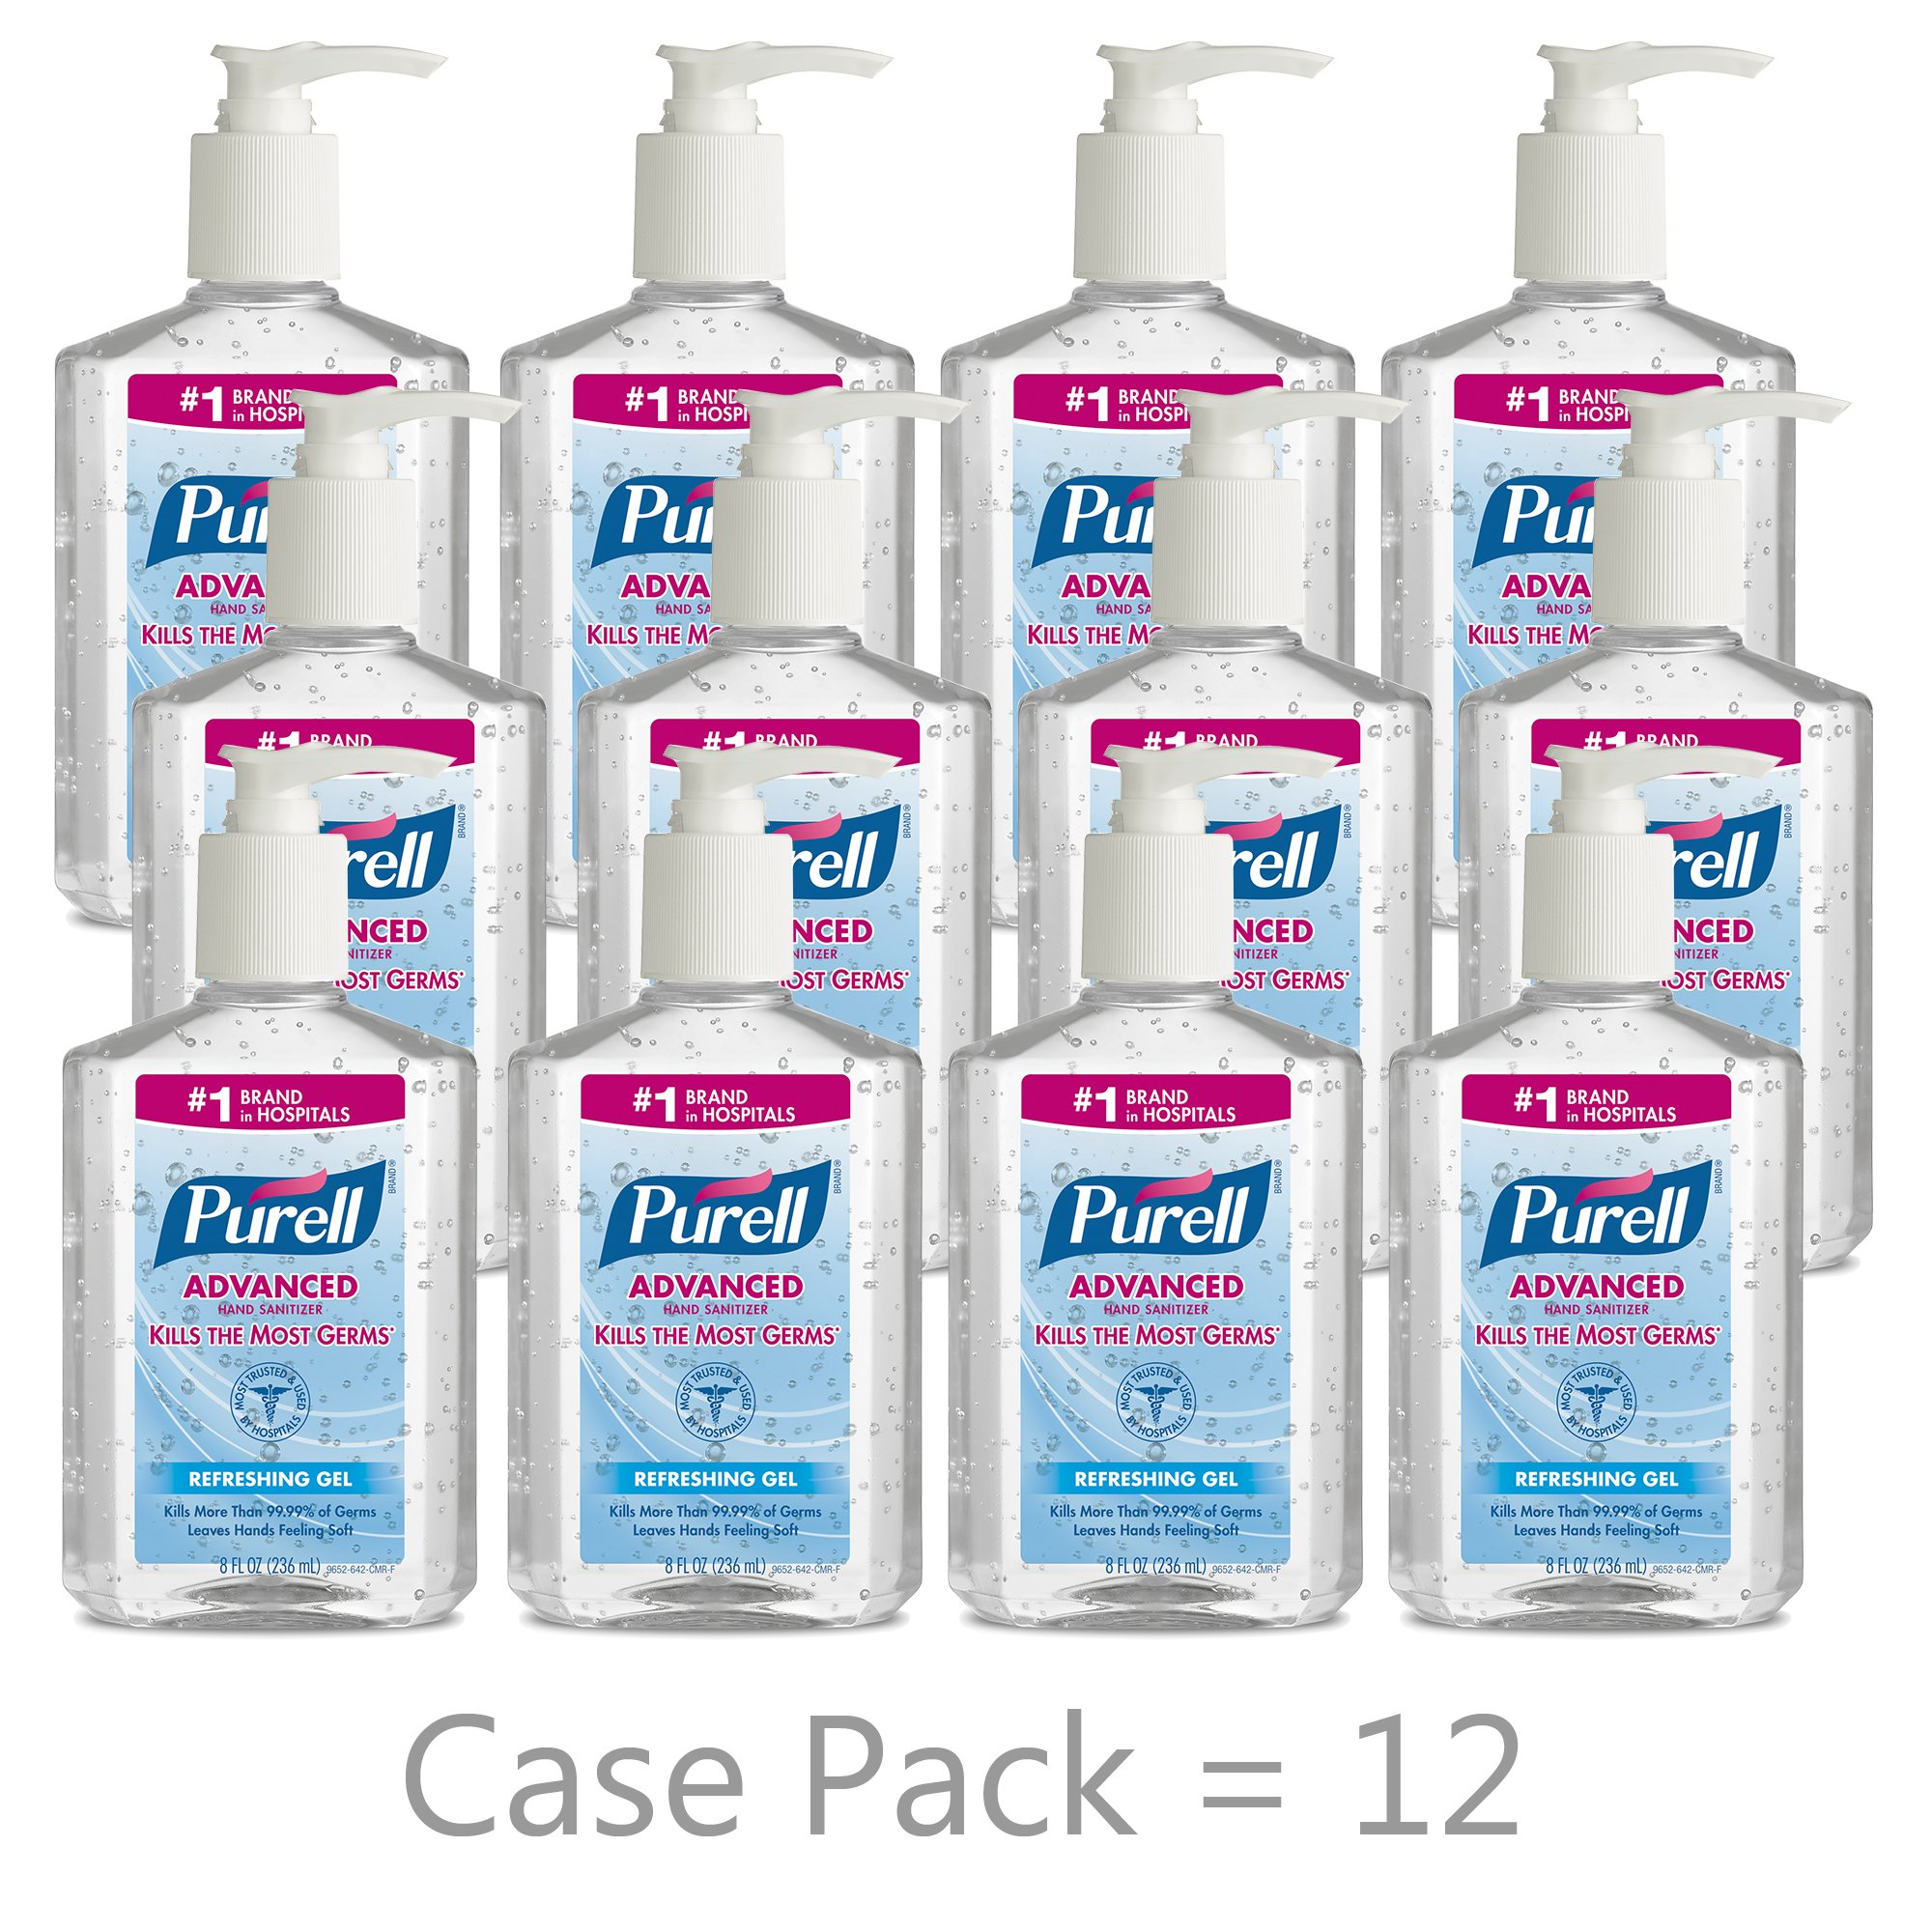 PURELL Advanced Hand Sanitizer, Refreshing Gel, 8 fl oz Sanitizer Table Top Pump Bottle (Case of 12) -  9652-12 by Purell